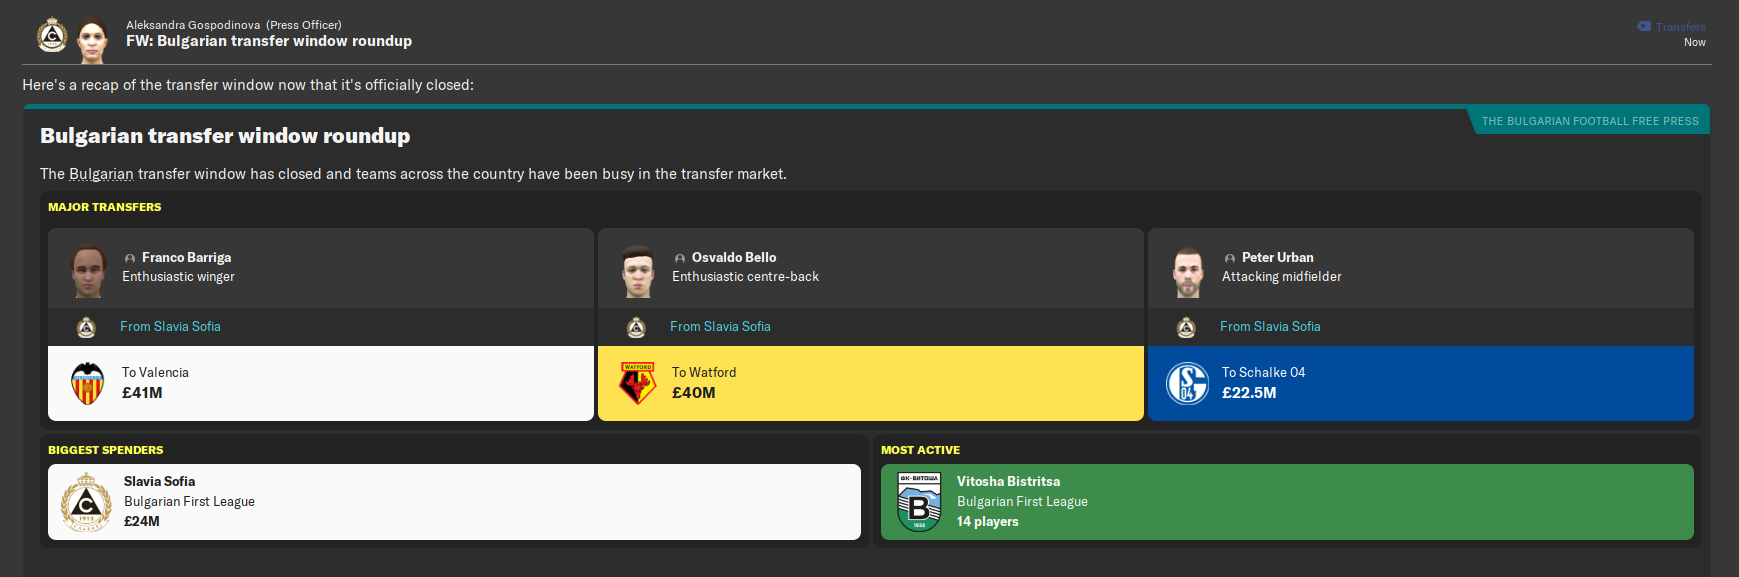 Transfers roundup.png